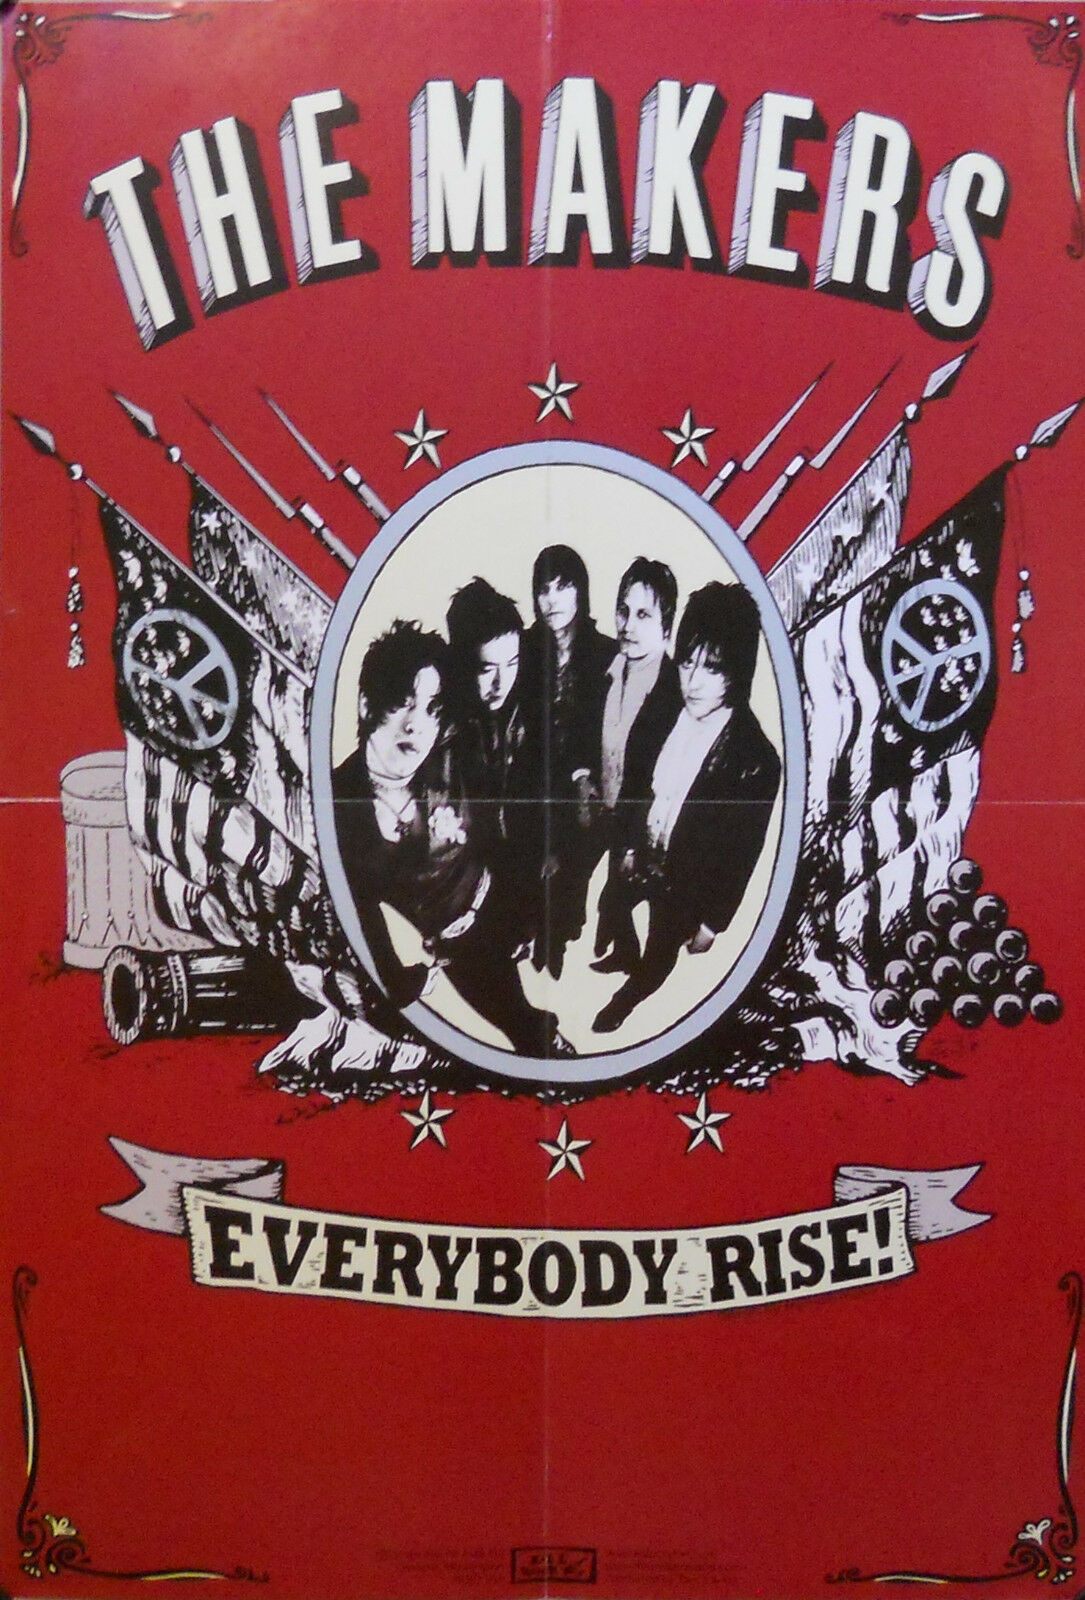 Primary image for MAKERS, EVERYBODY RISE POSTER (B9)